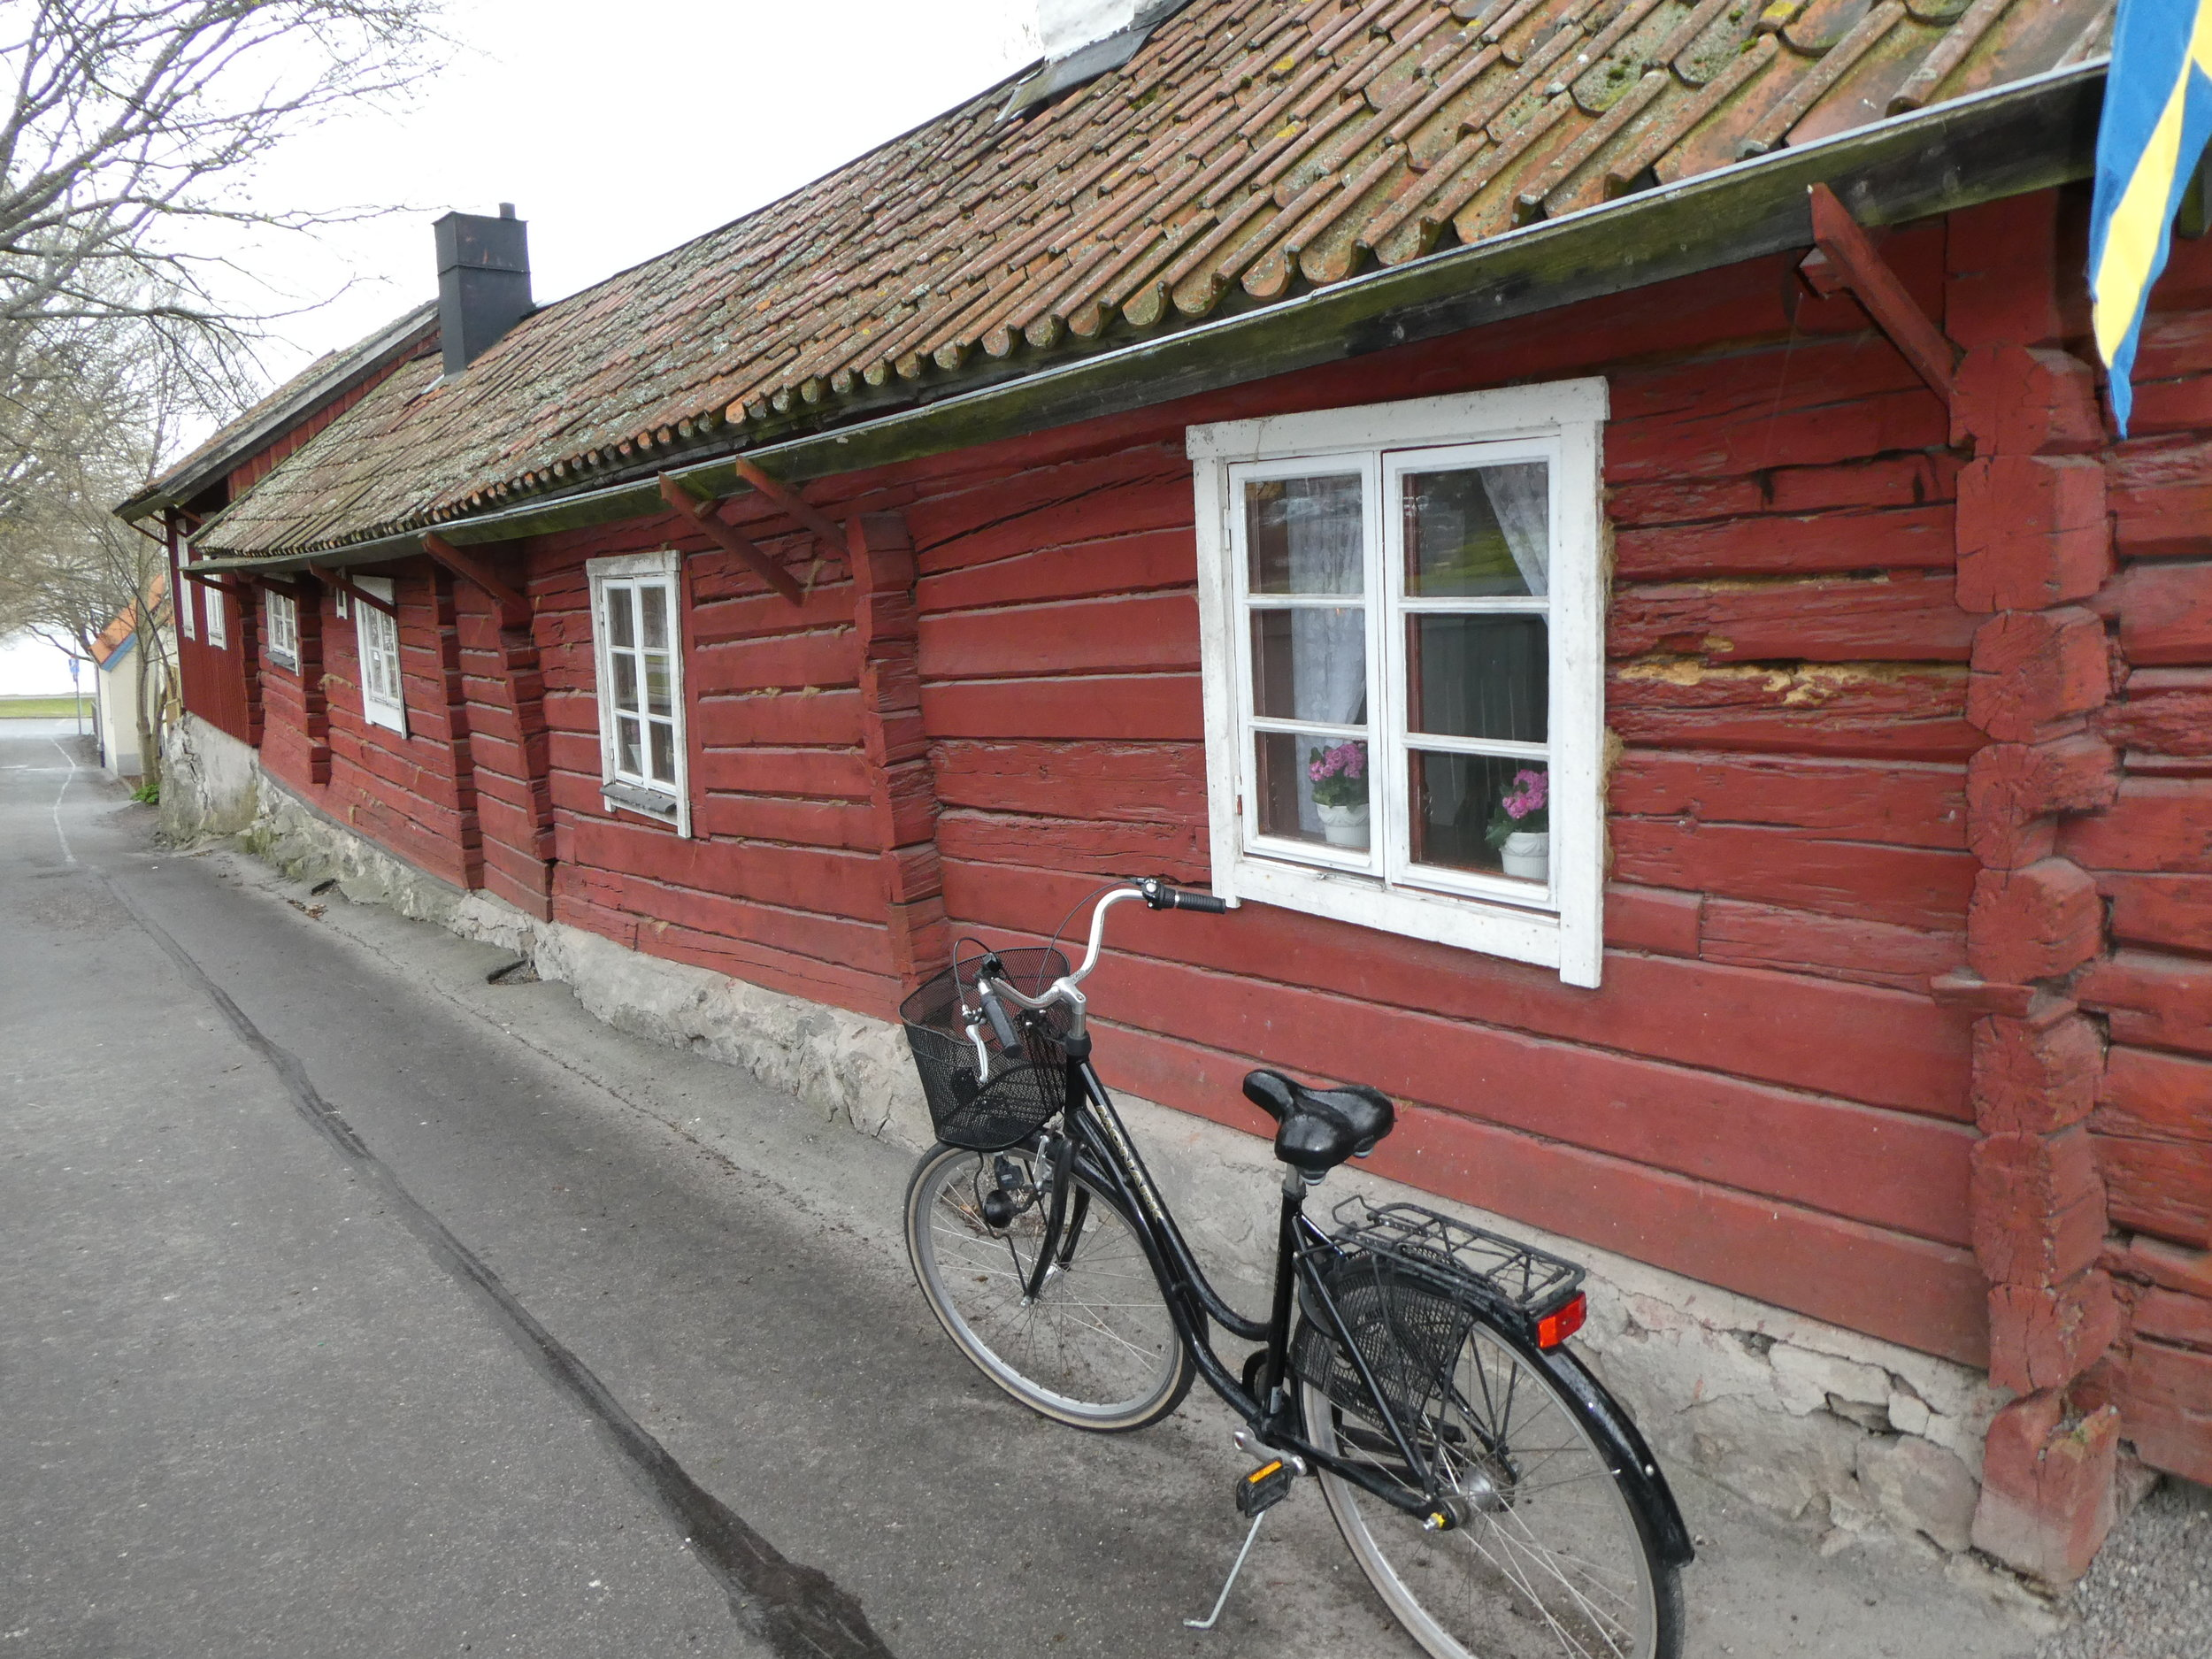 One of the oldest buildings in Sigtuna, it currently houses a popular cafe.